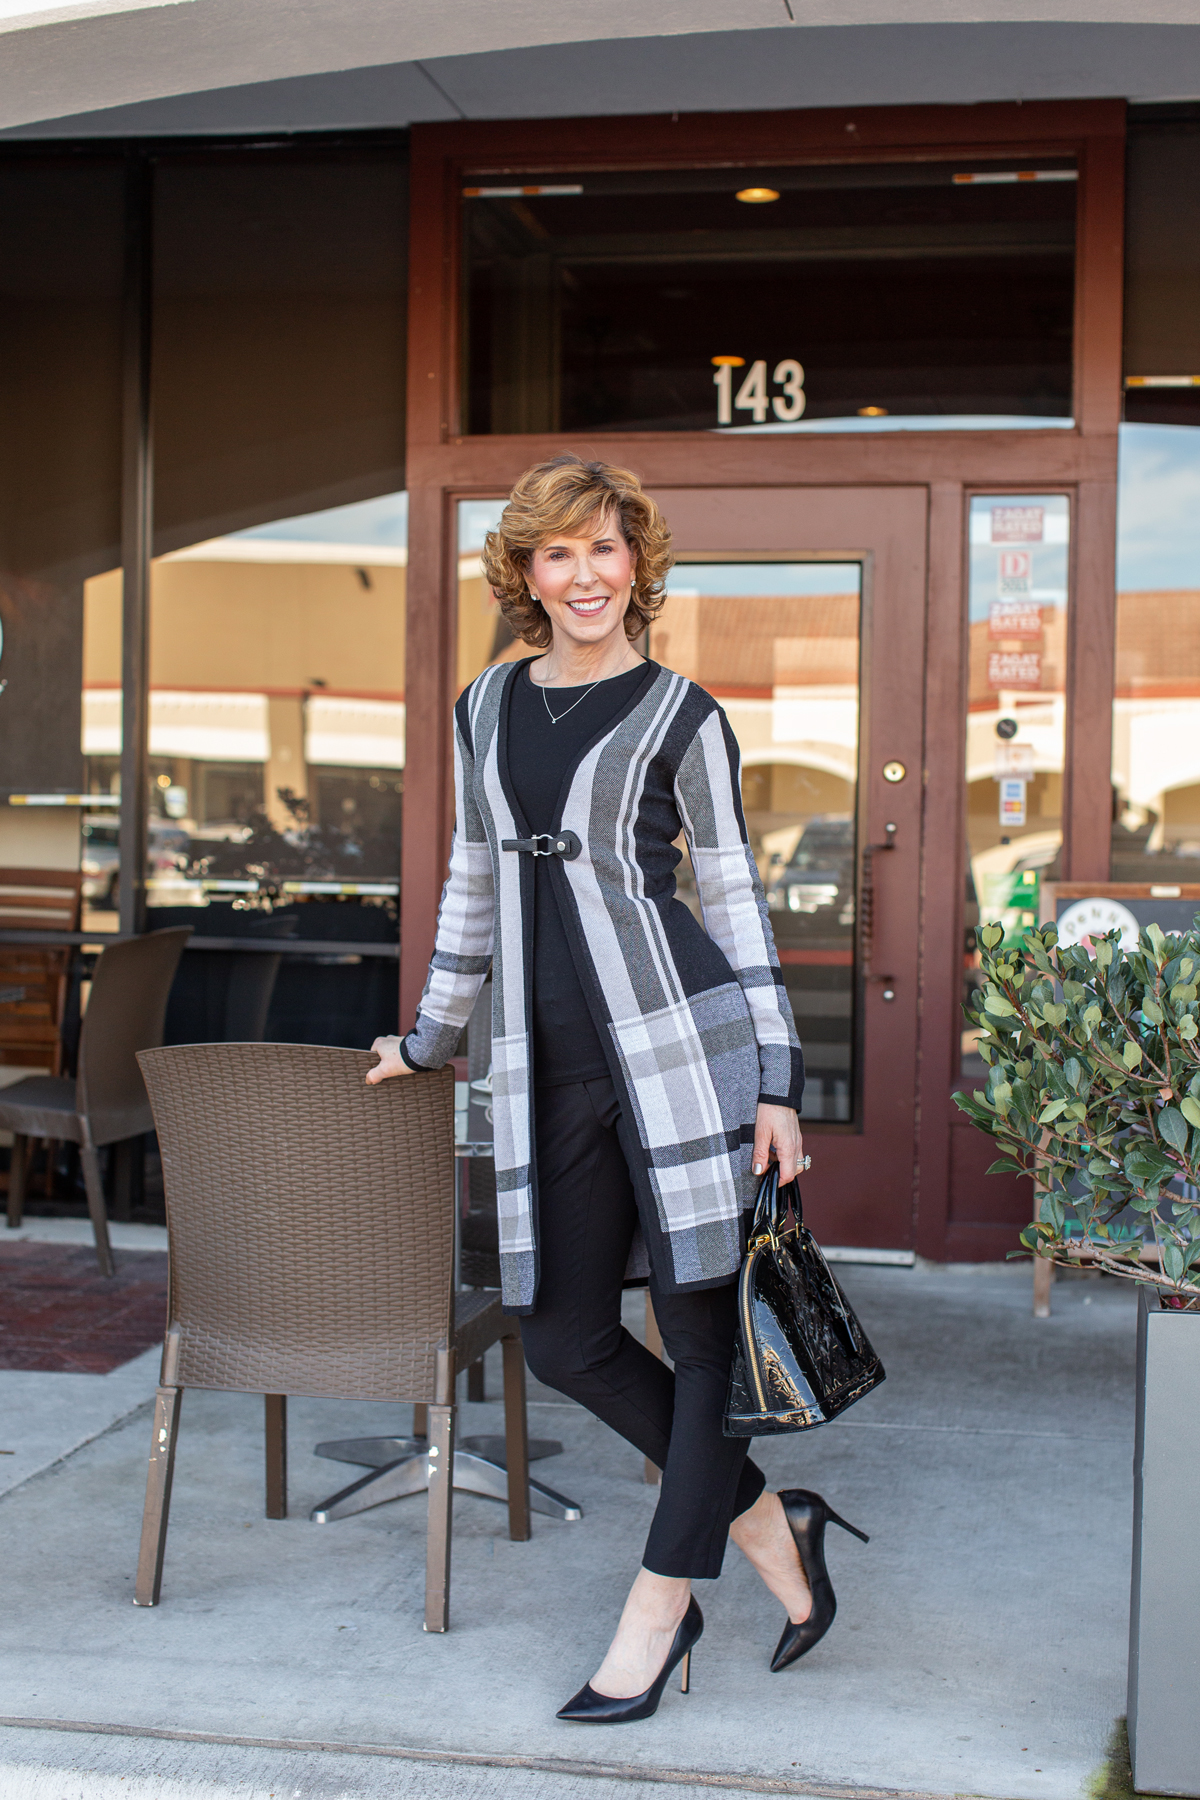 woman in black and gray plaid long cardigan standing in front of a restaurant